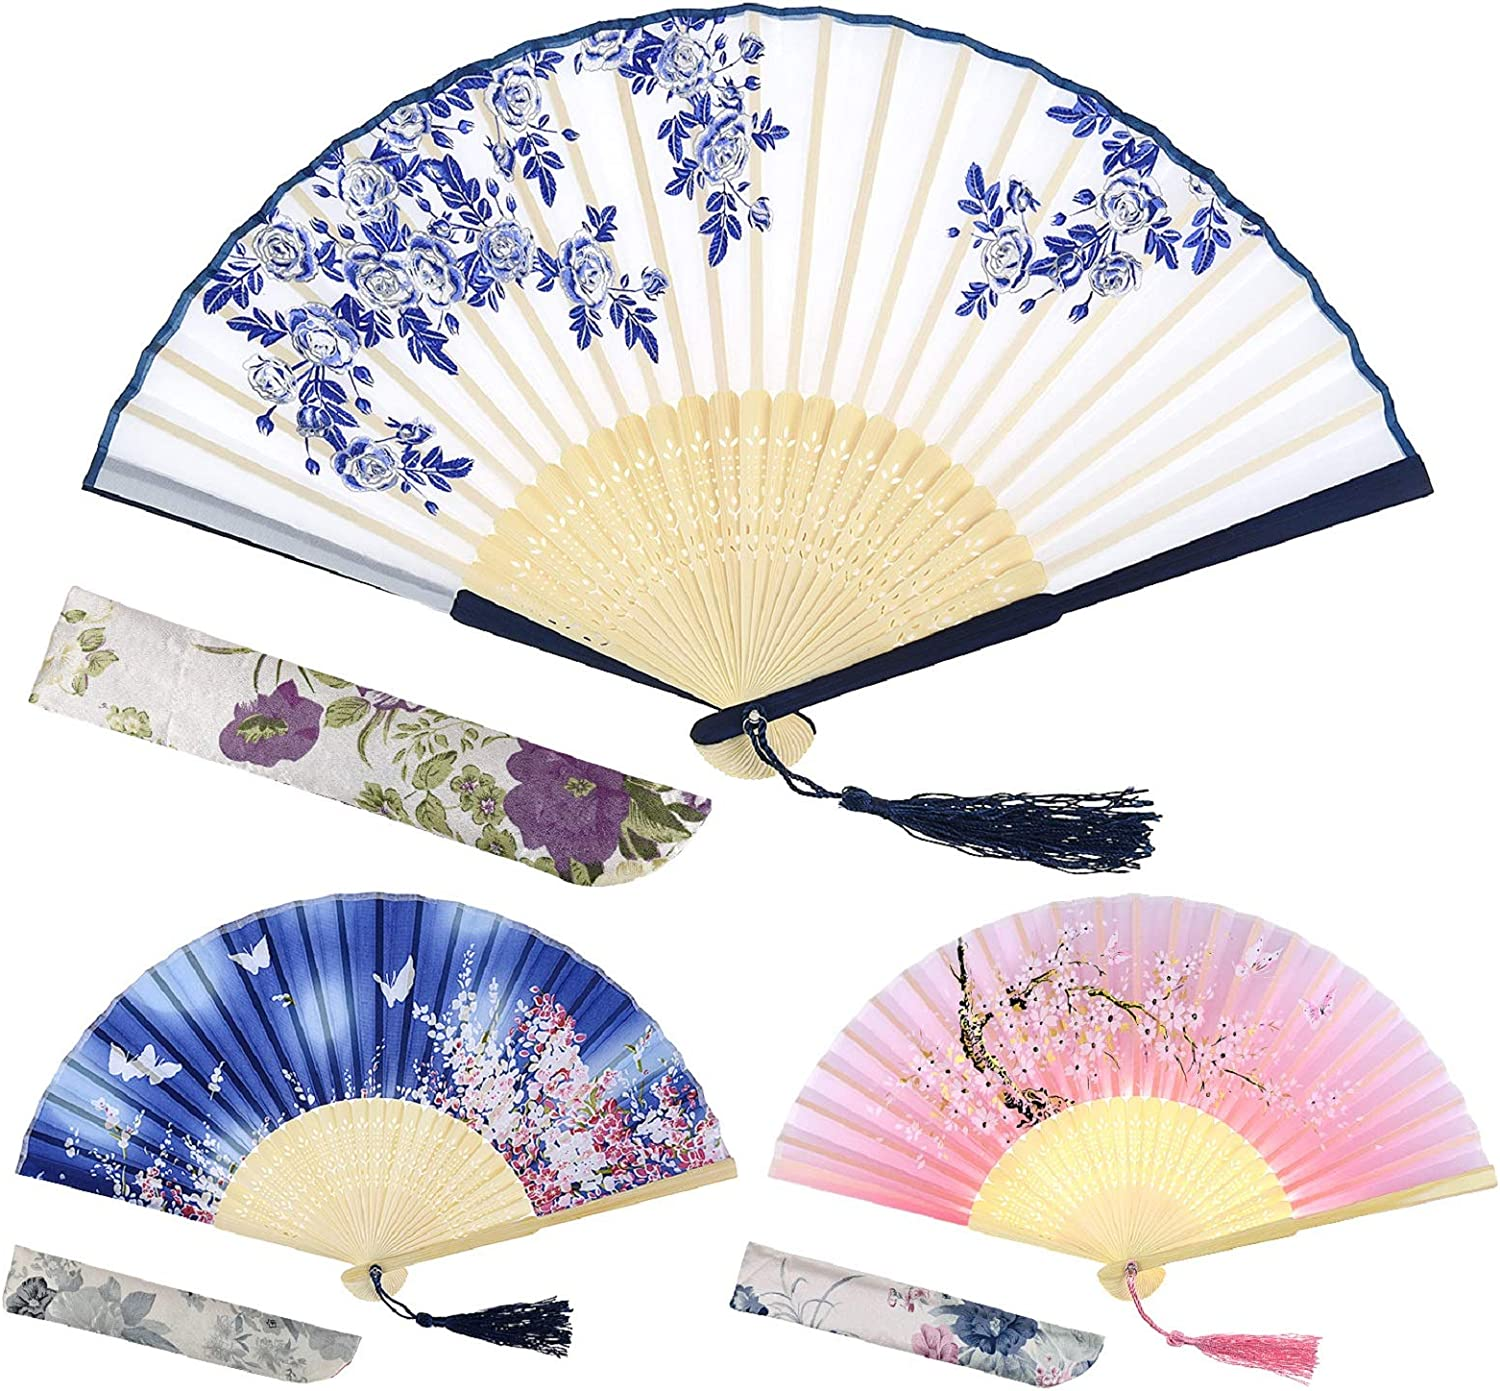 EAONE 3 Pcs Handheld Fan, Abanicos de Mano Chinese Butterflies Flowers Vintage Style Silk Hand Folding Fan with Bamboo Frame and Elegant Tassel for Party Wedding Dancing Cosplay Home Decoration